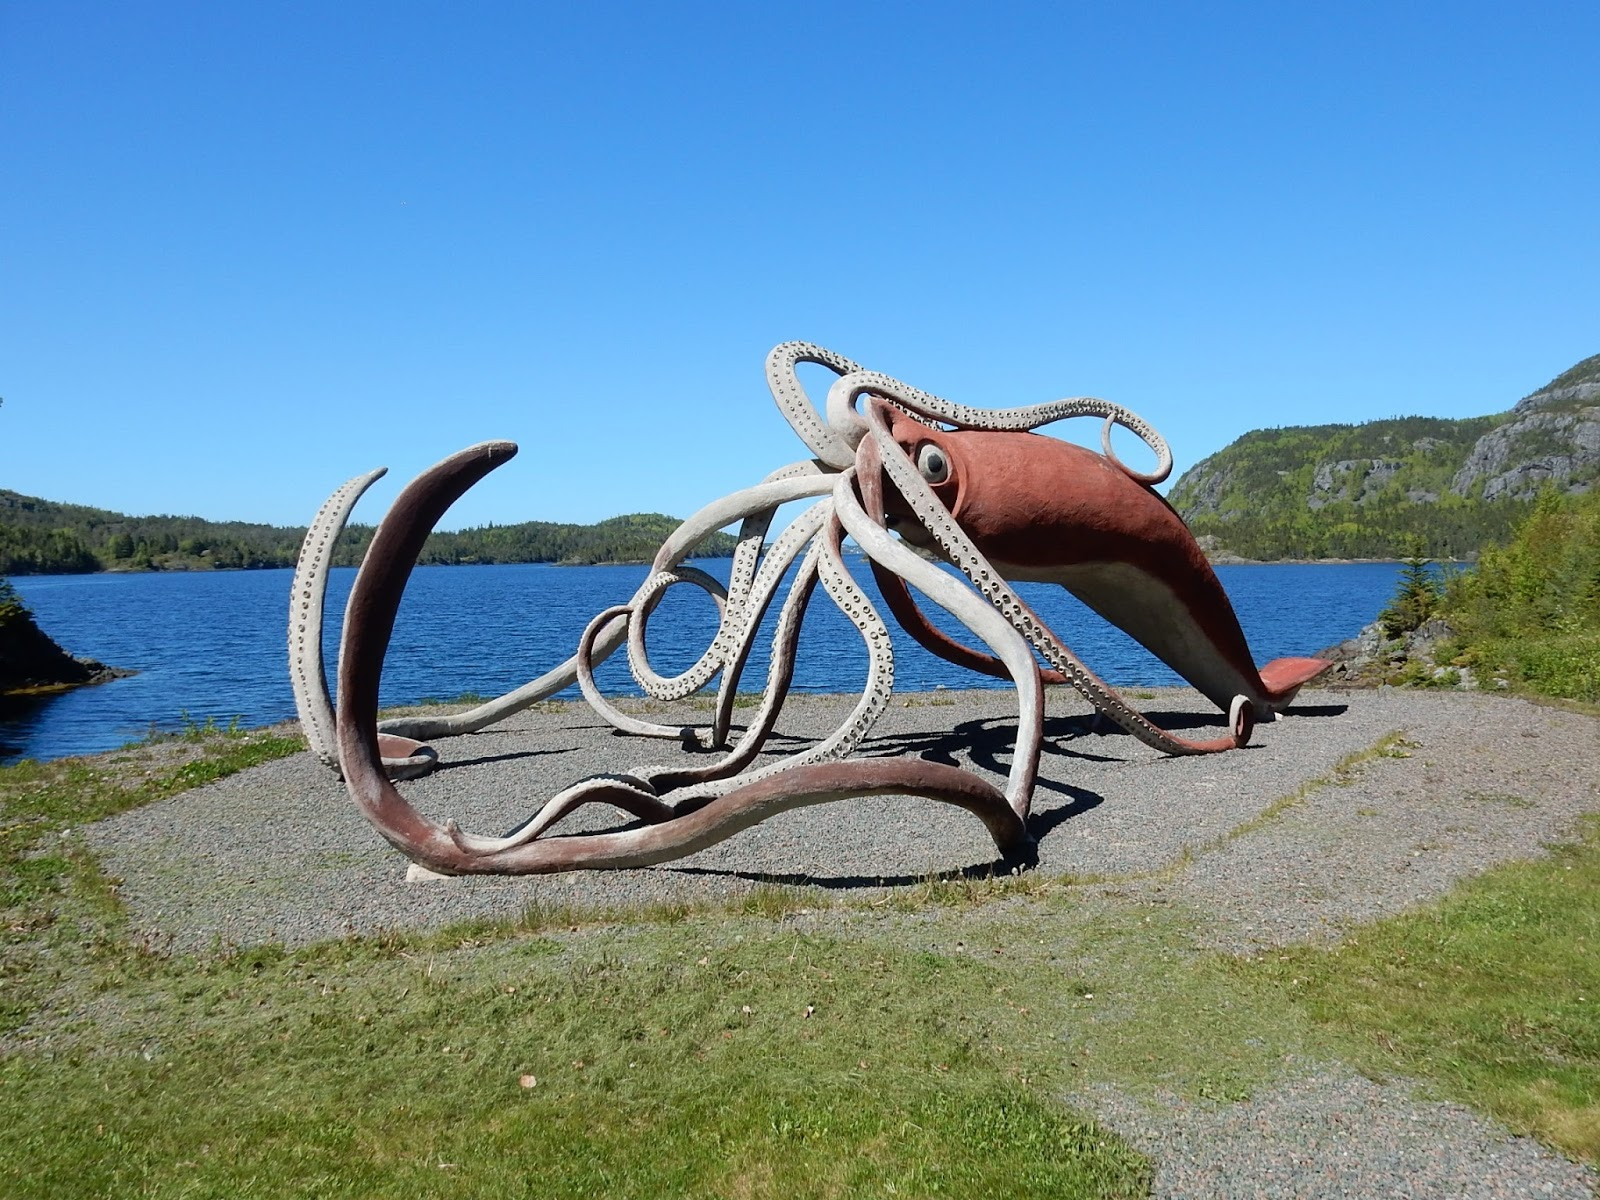 A huge sculpture of a giant squid.